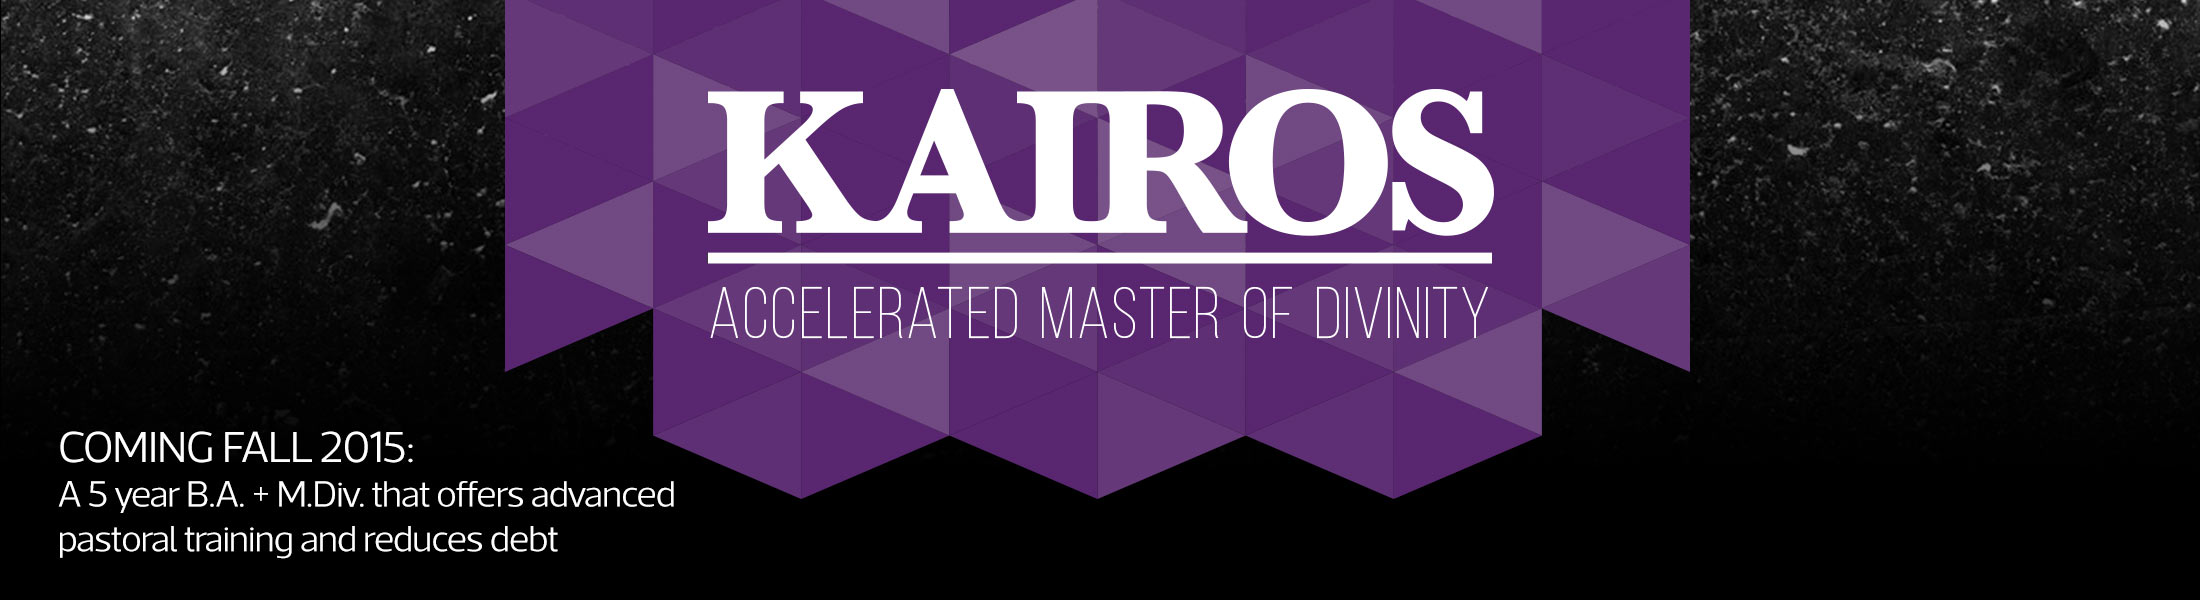 Announcing the Kairos Accelerated Master of Divinity